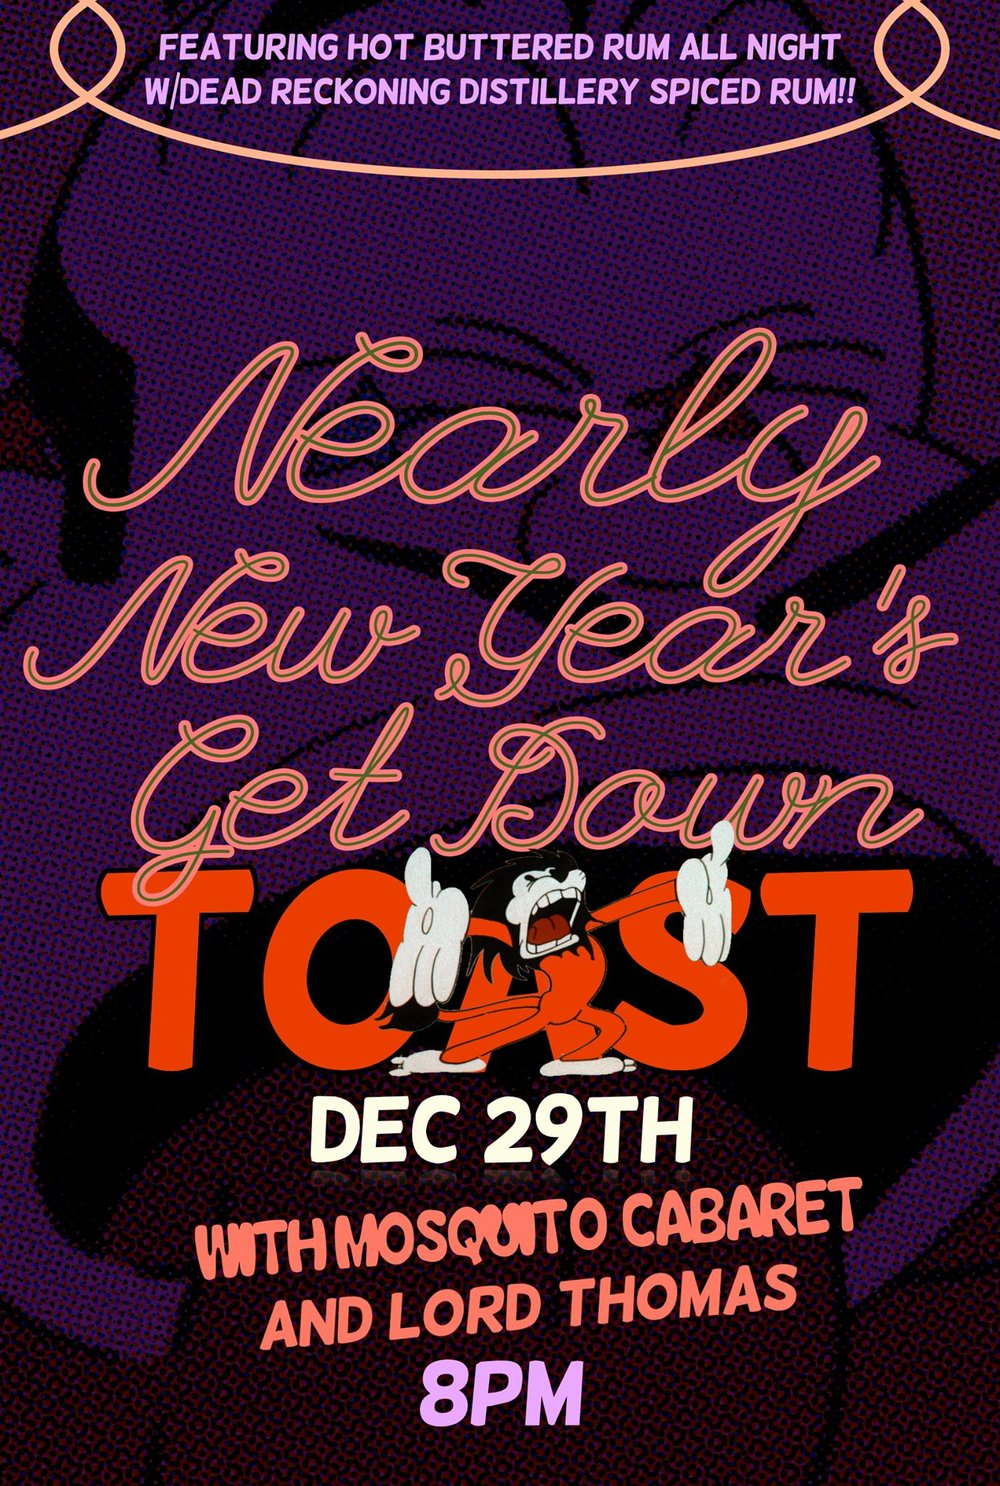 Nearly New Year's Get Down With Mosquito Cabaret and DJ Lord Thomas